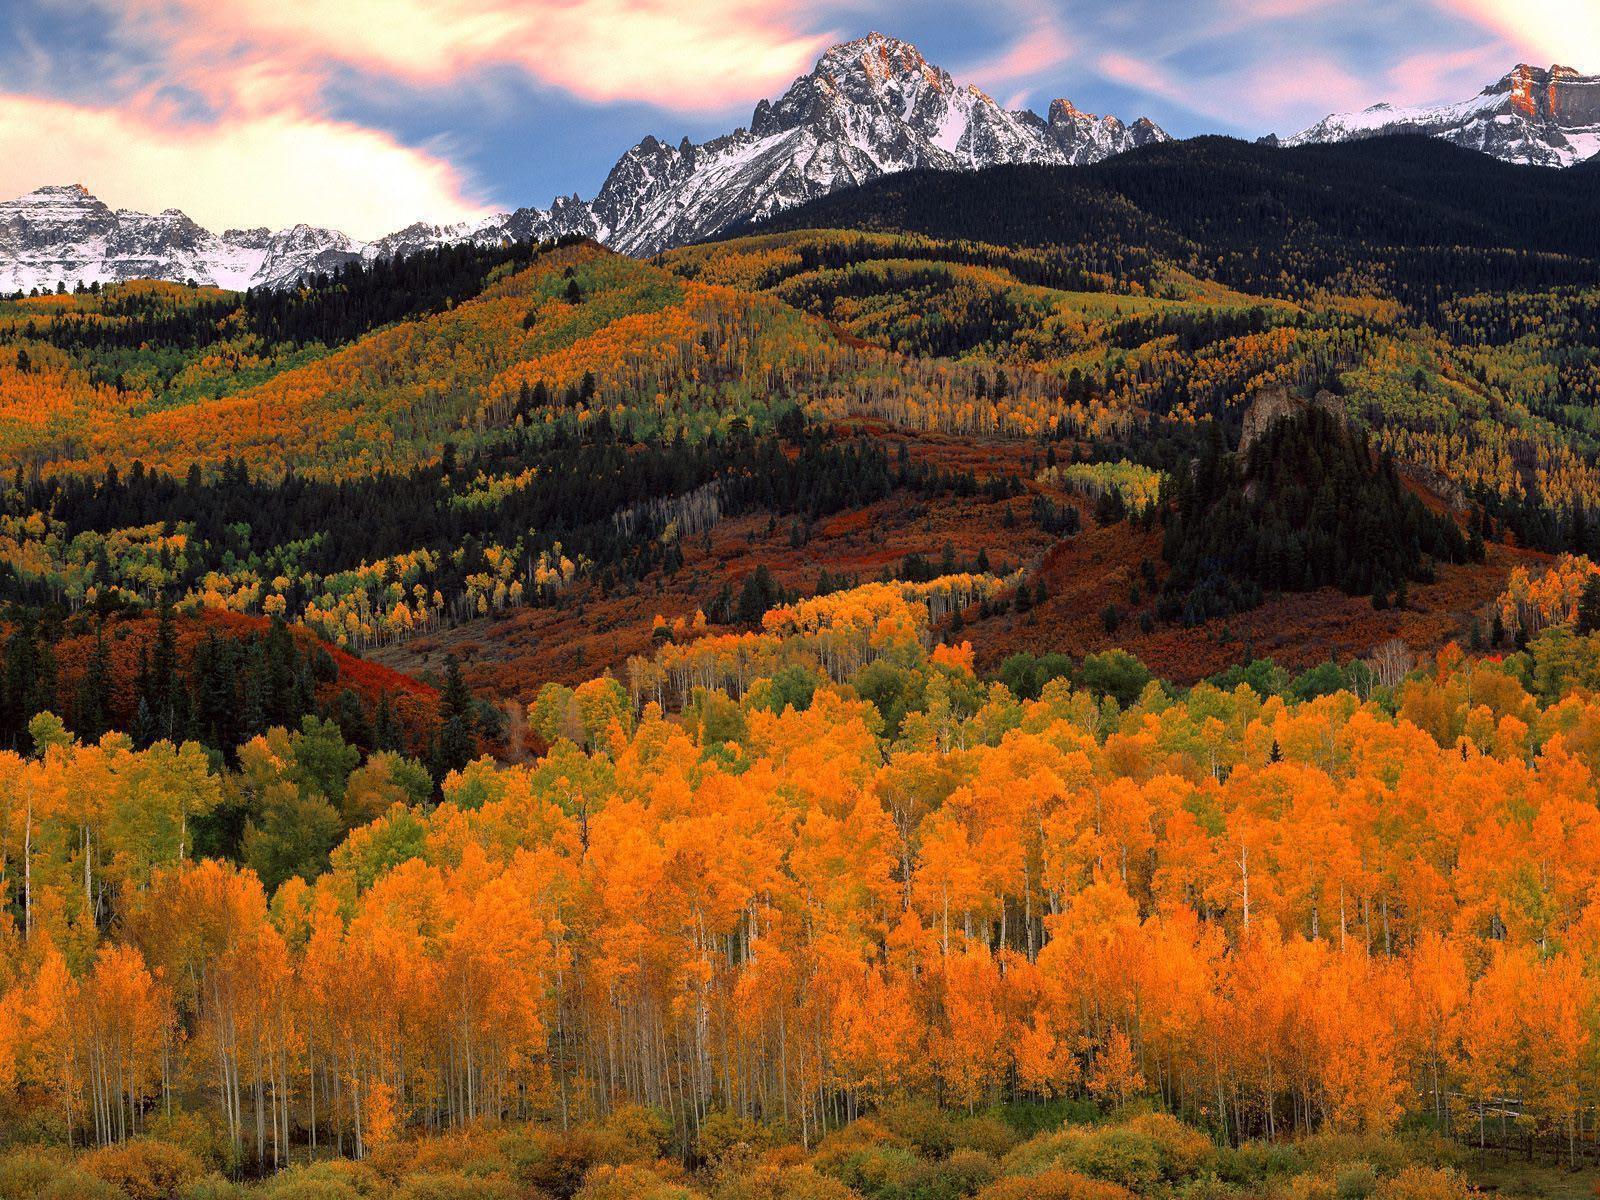 National Geographic Wallpaper Fall Foliage Nature Backgrounds For Mac Wallpaper Cave